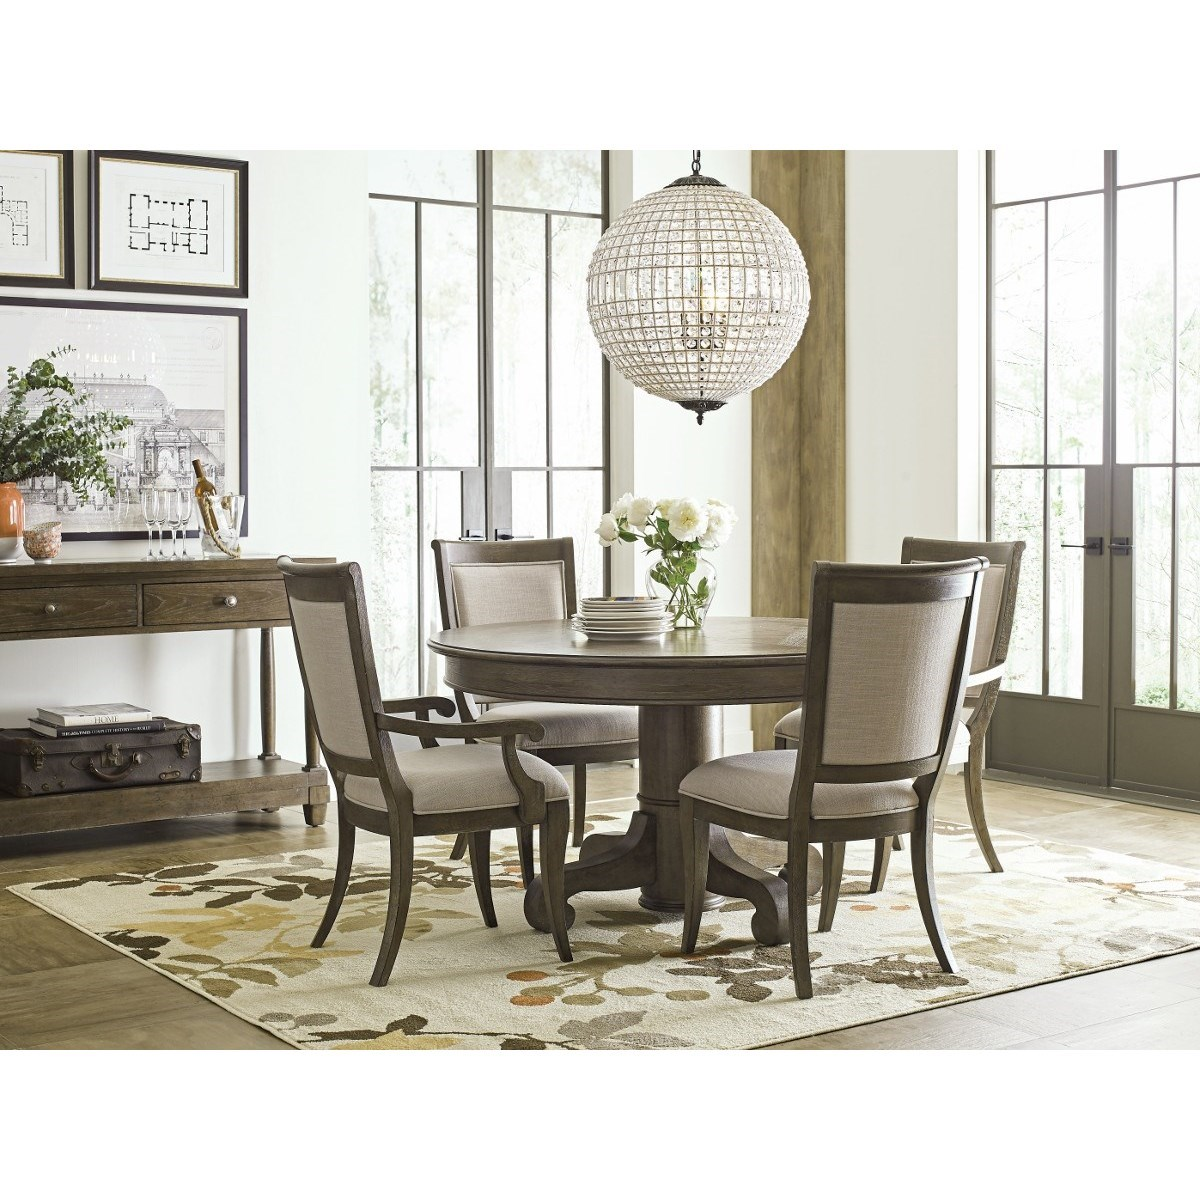 Anson Casual Dining Room Group by American Drew at Wayside Furniture